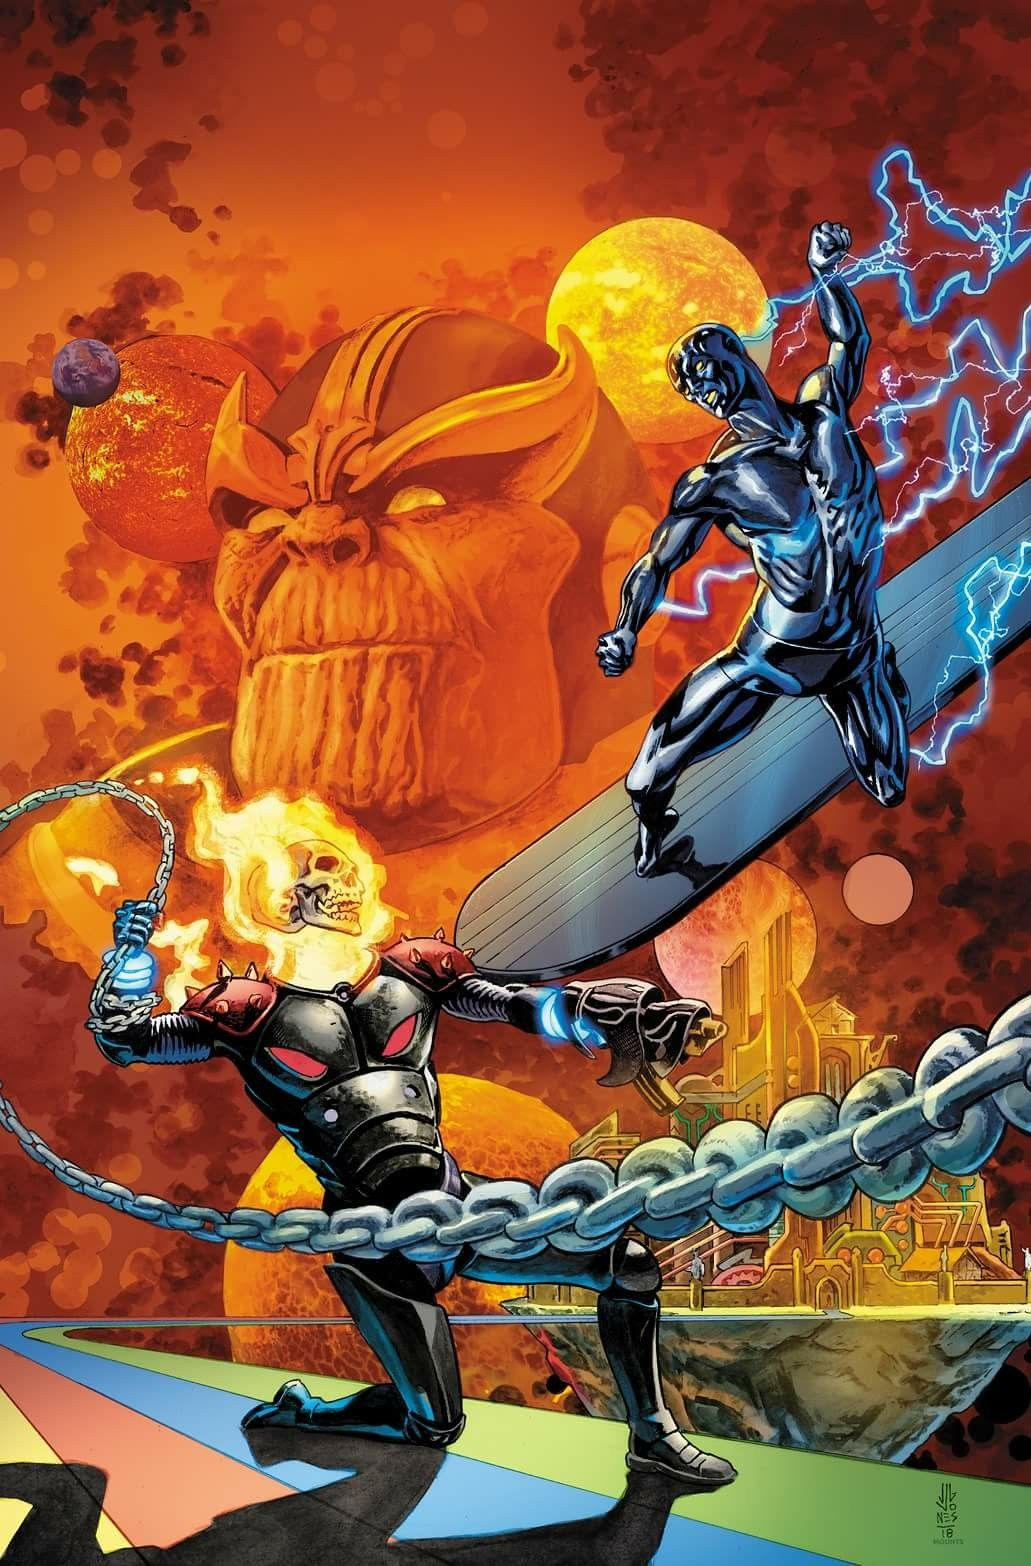 Cosmic Ghost Rider VS Silver Surfer | Superheroes and Villains